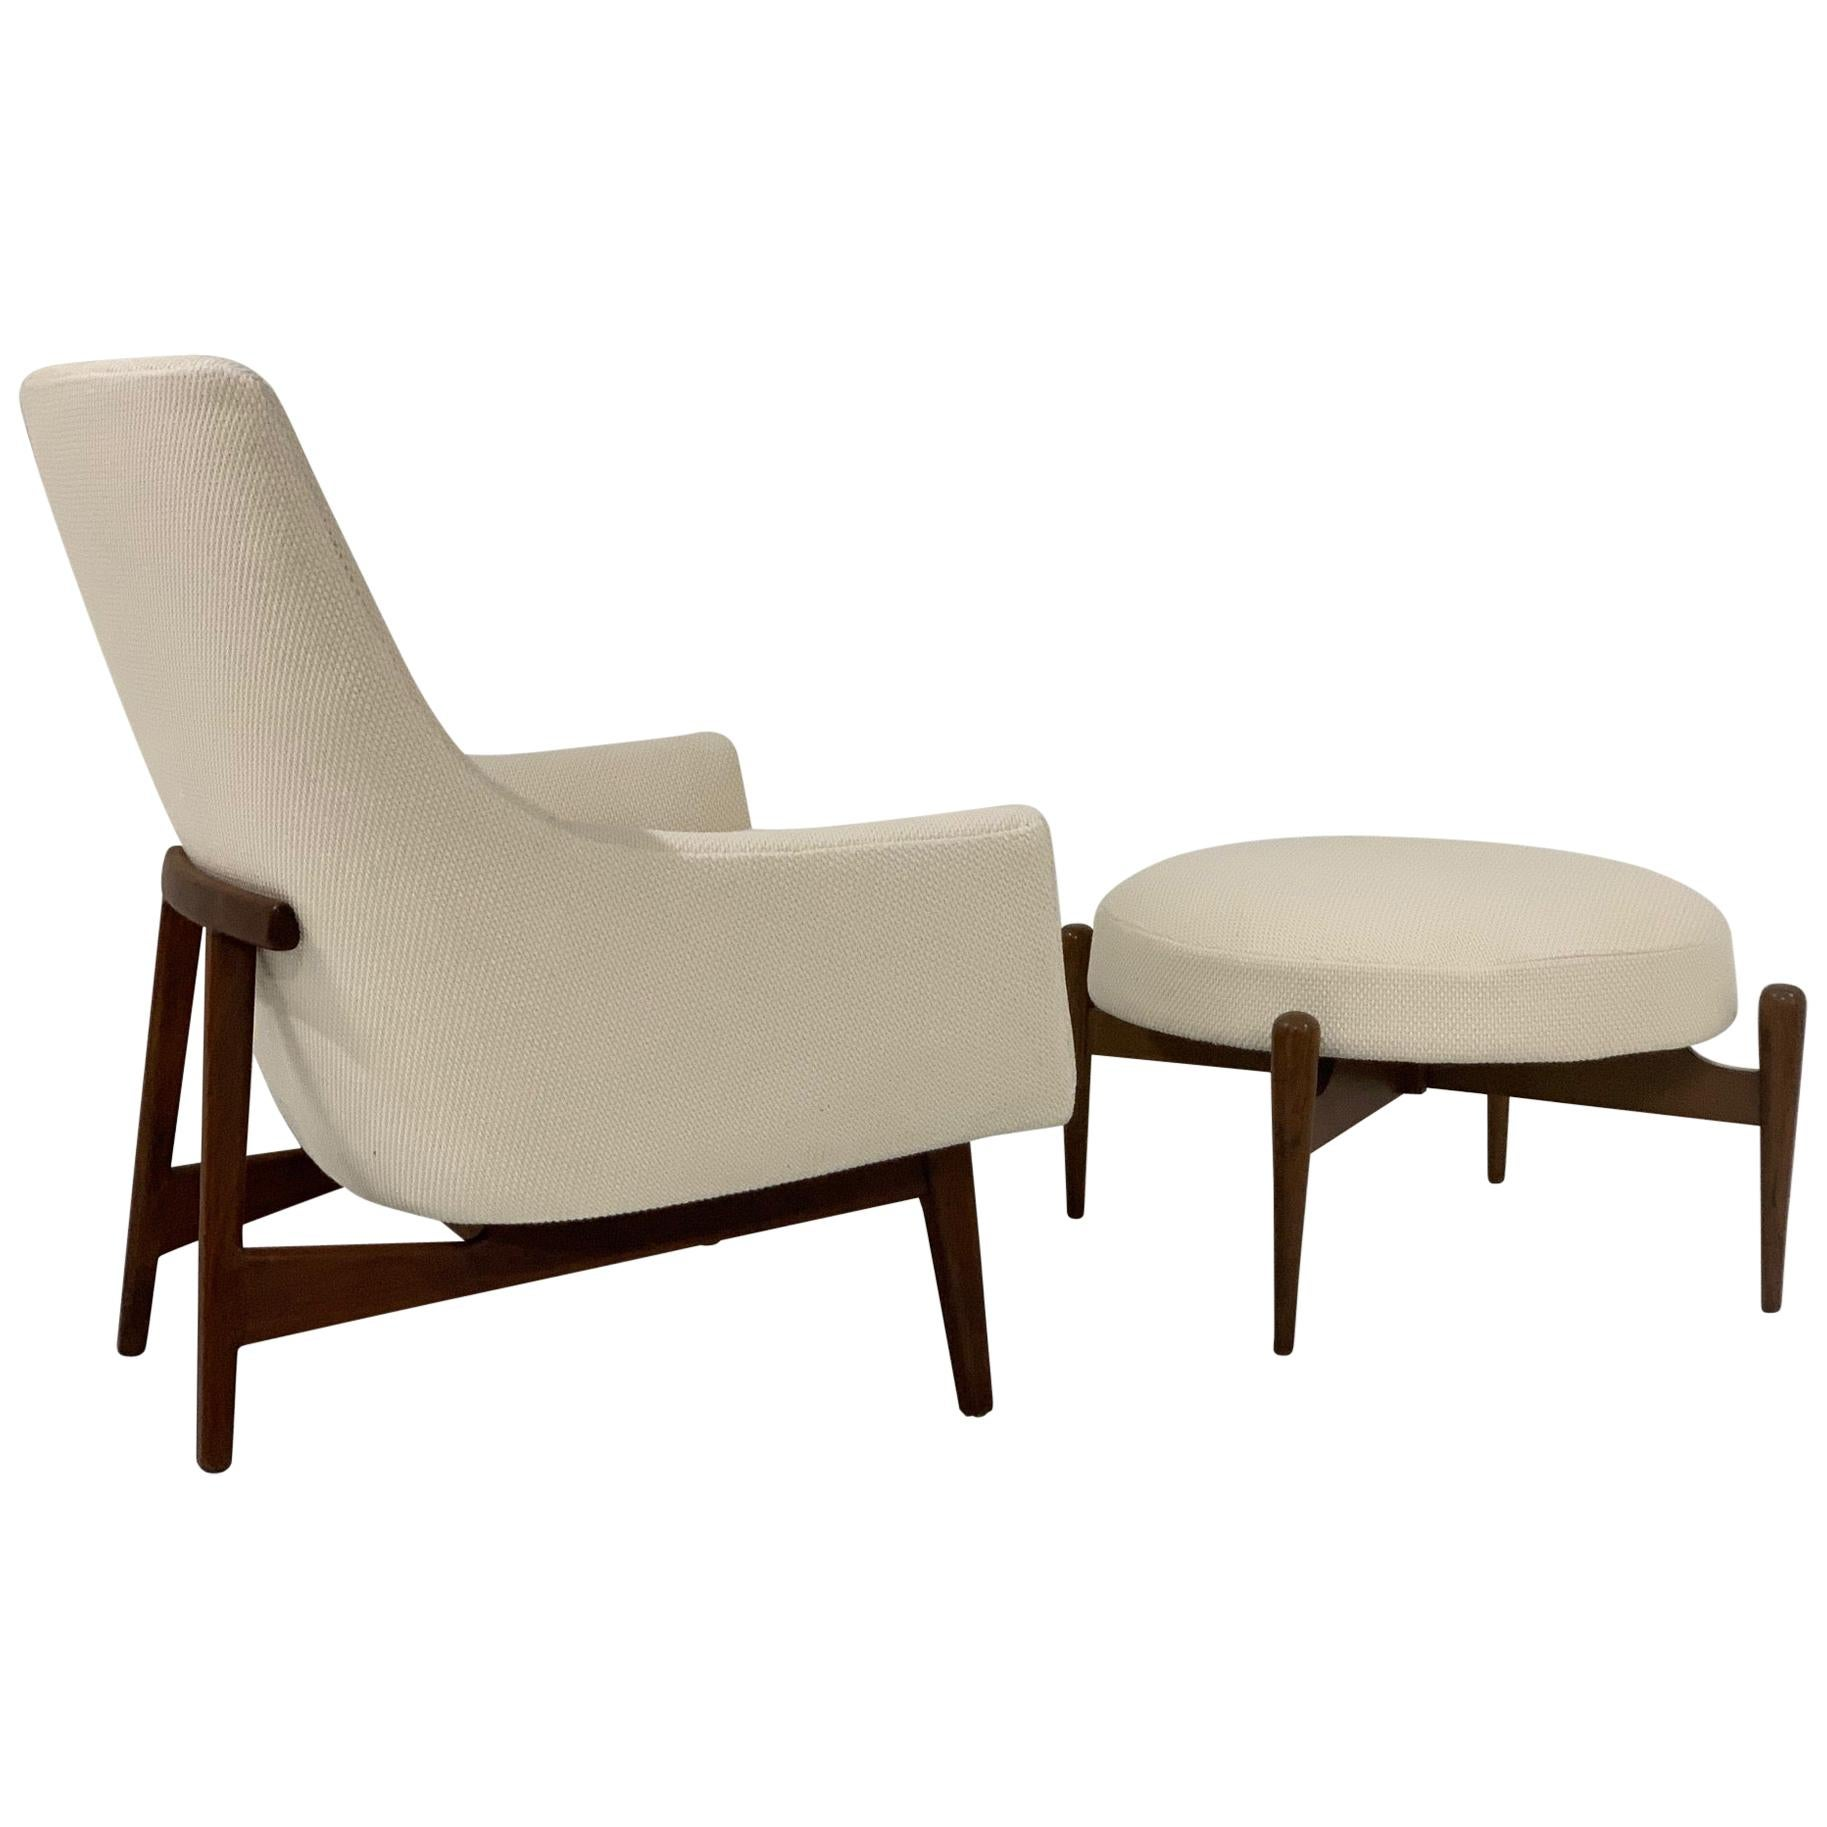 Jens Risom Lounge A-Chair and Matching Ottoman Model 6540